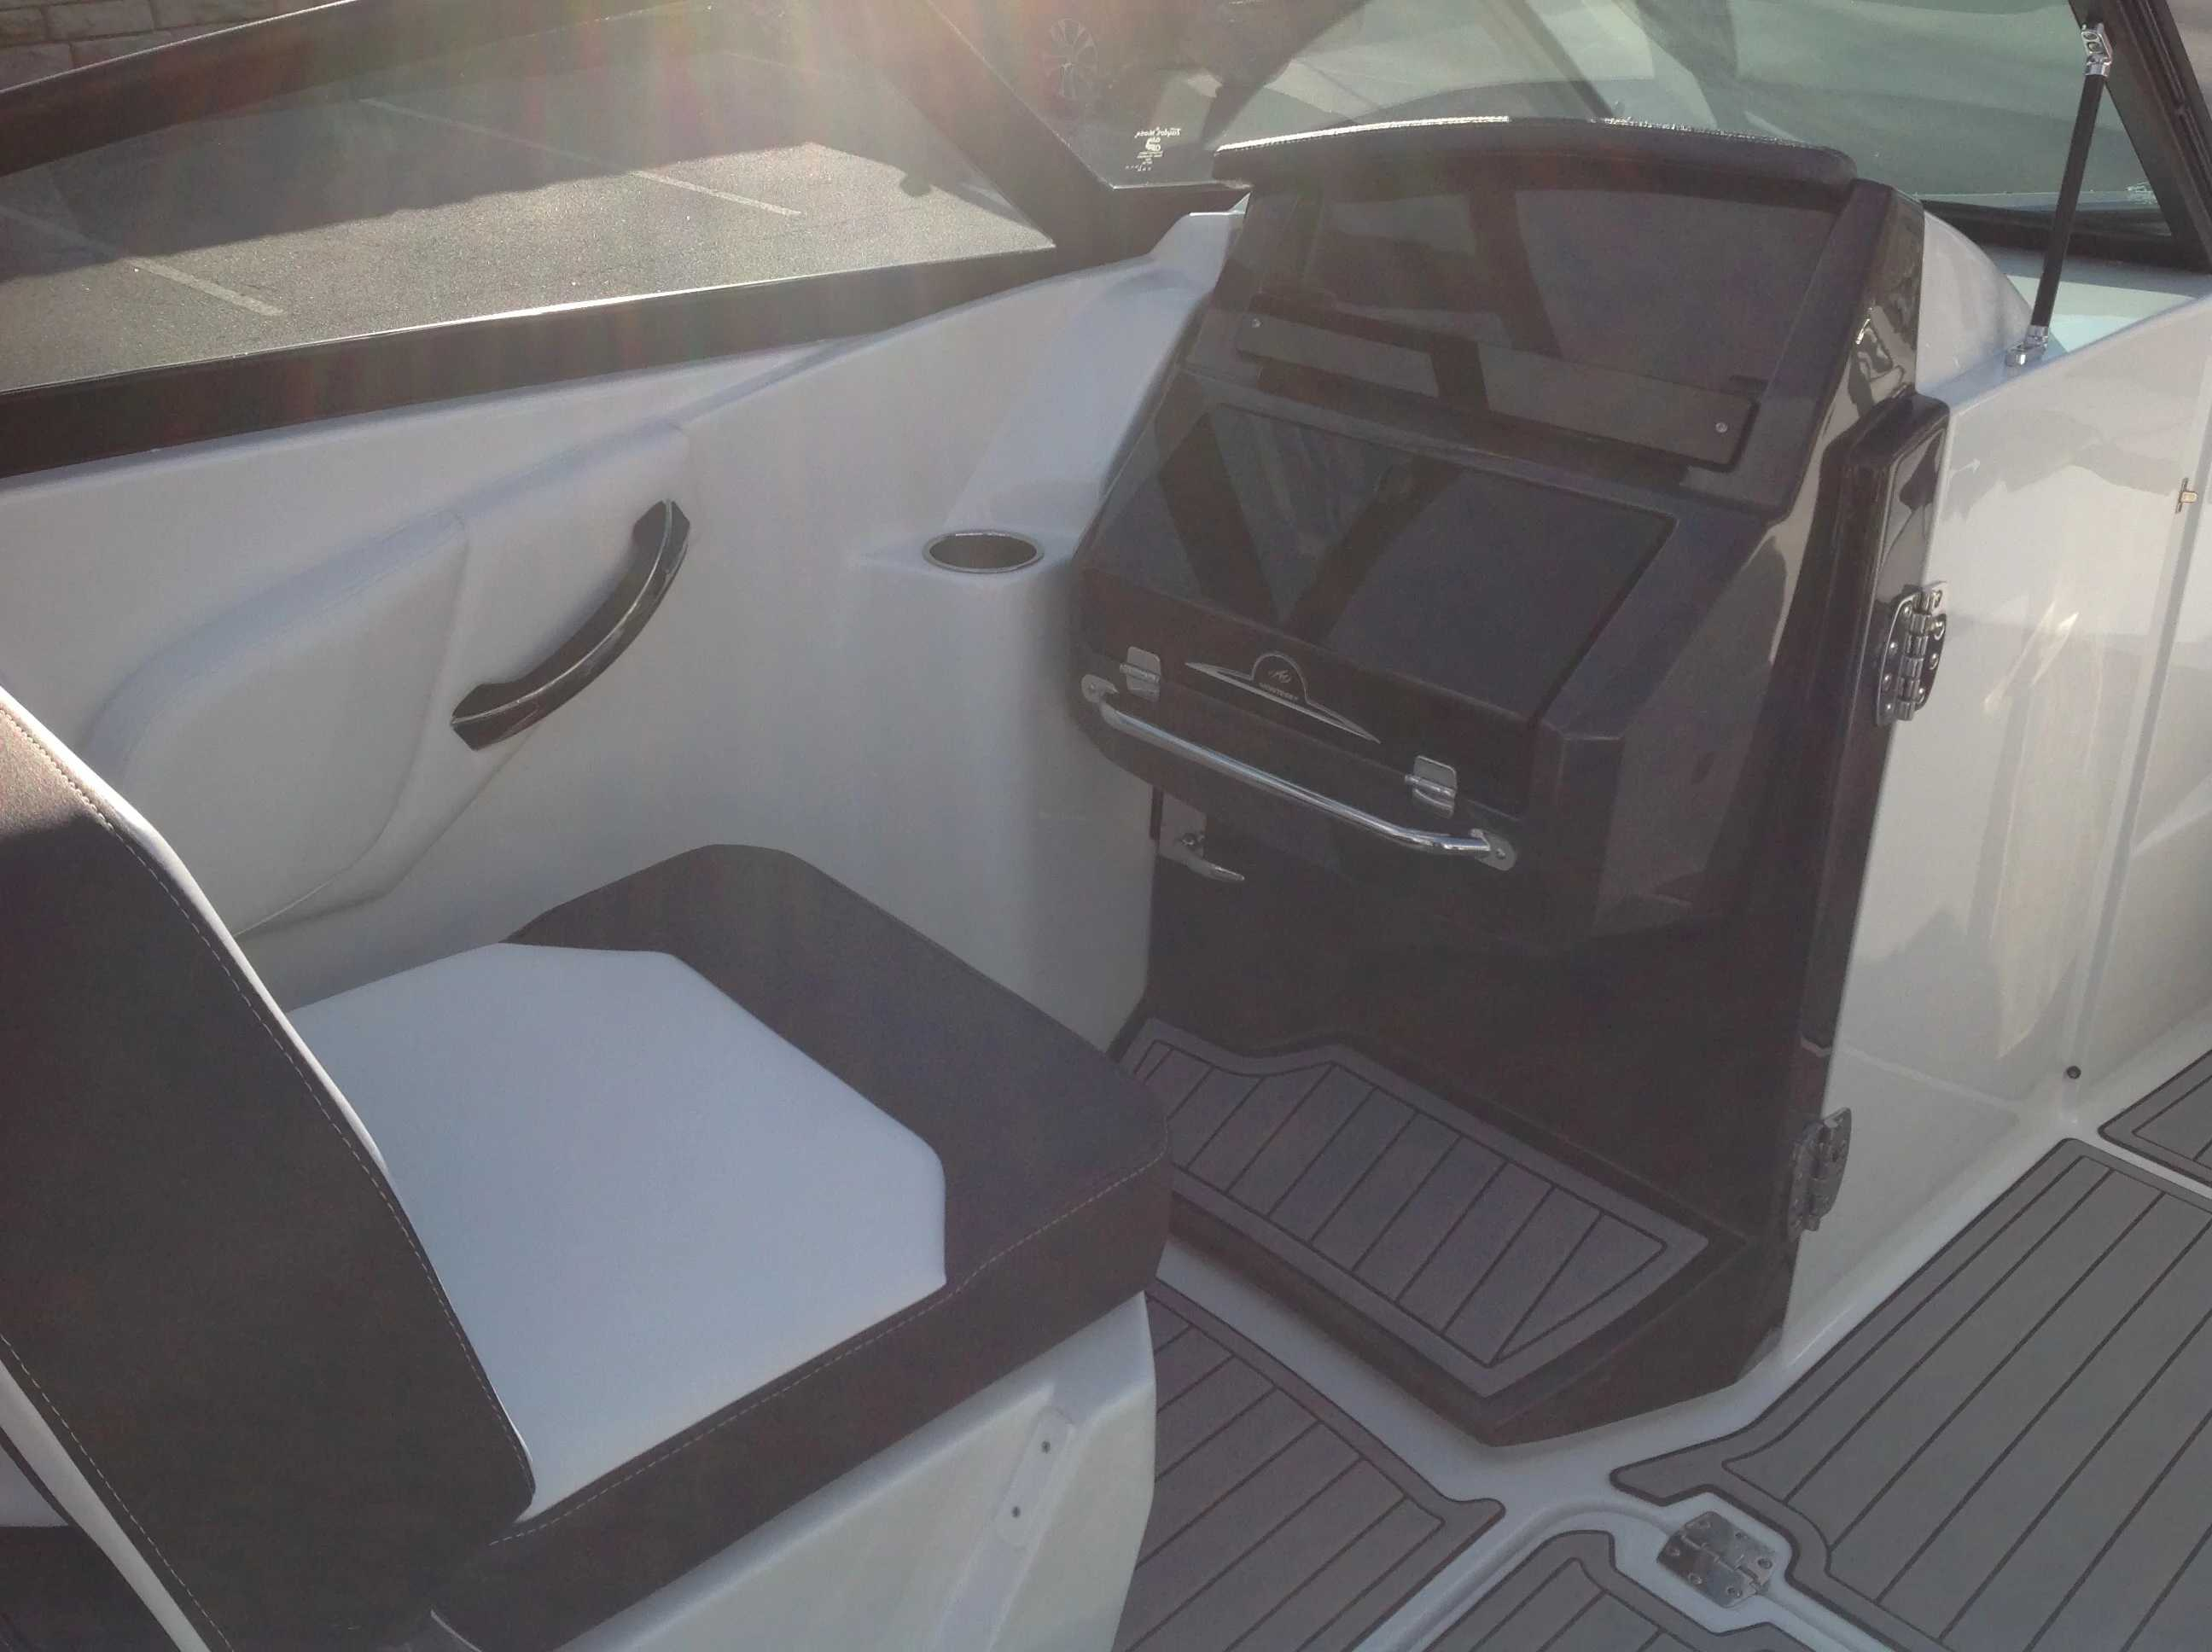 2021 Monterey boat for sale, model of the boat is M45 & Image # 7 of 21